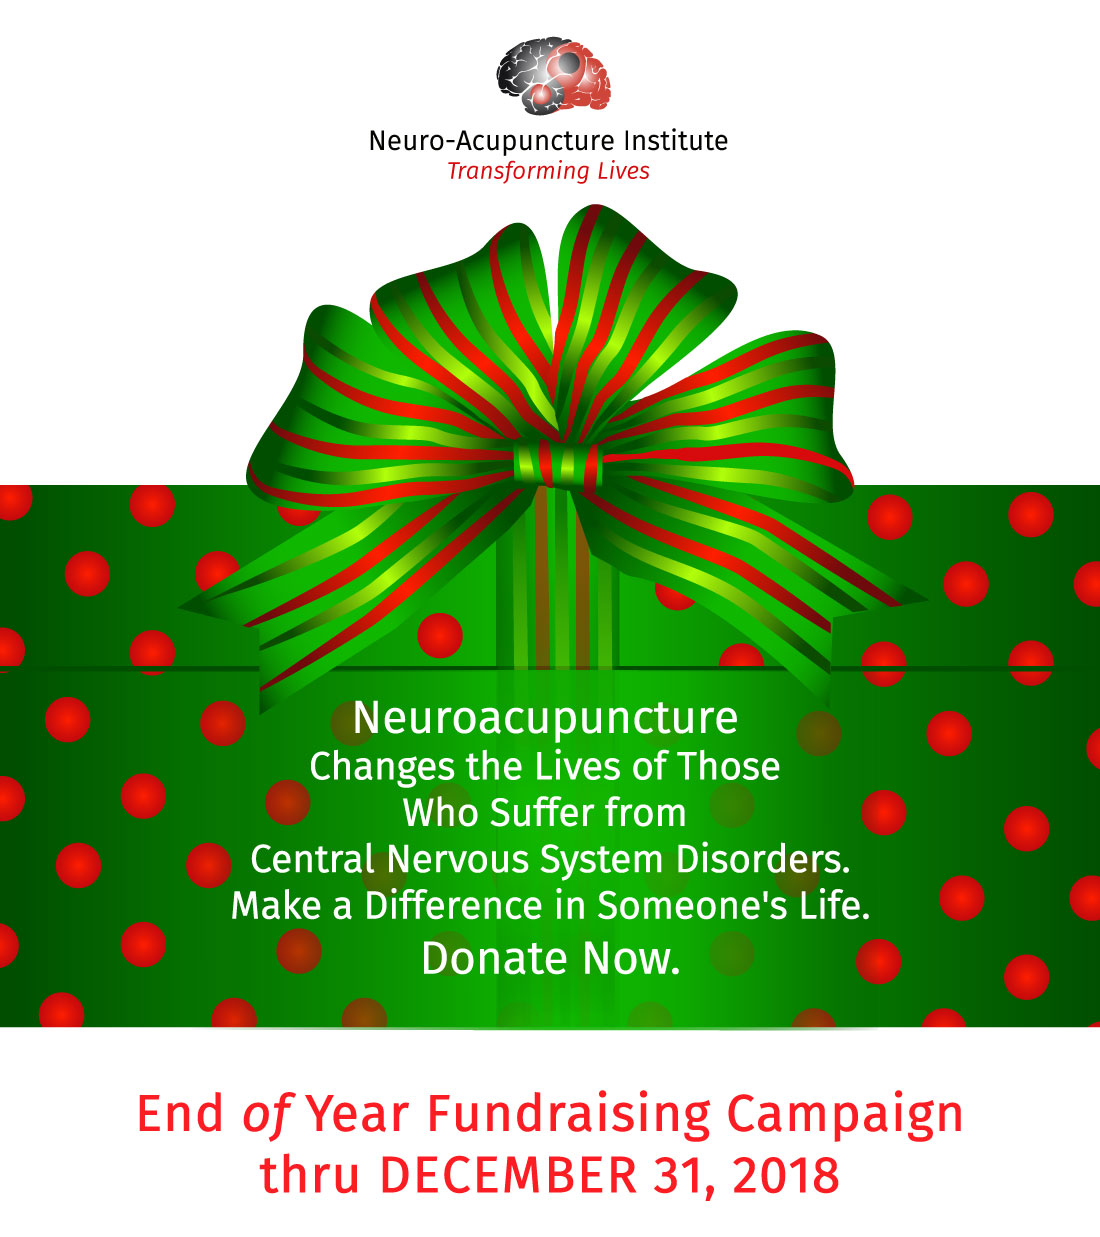 Fund raising Central Nervous Disorders Health